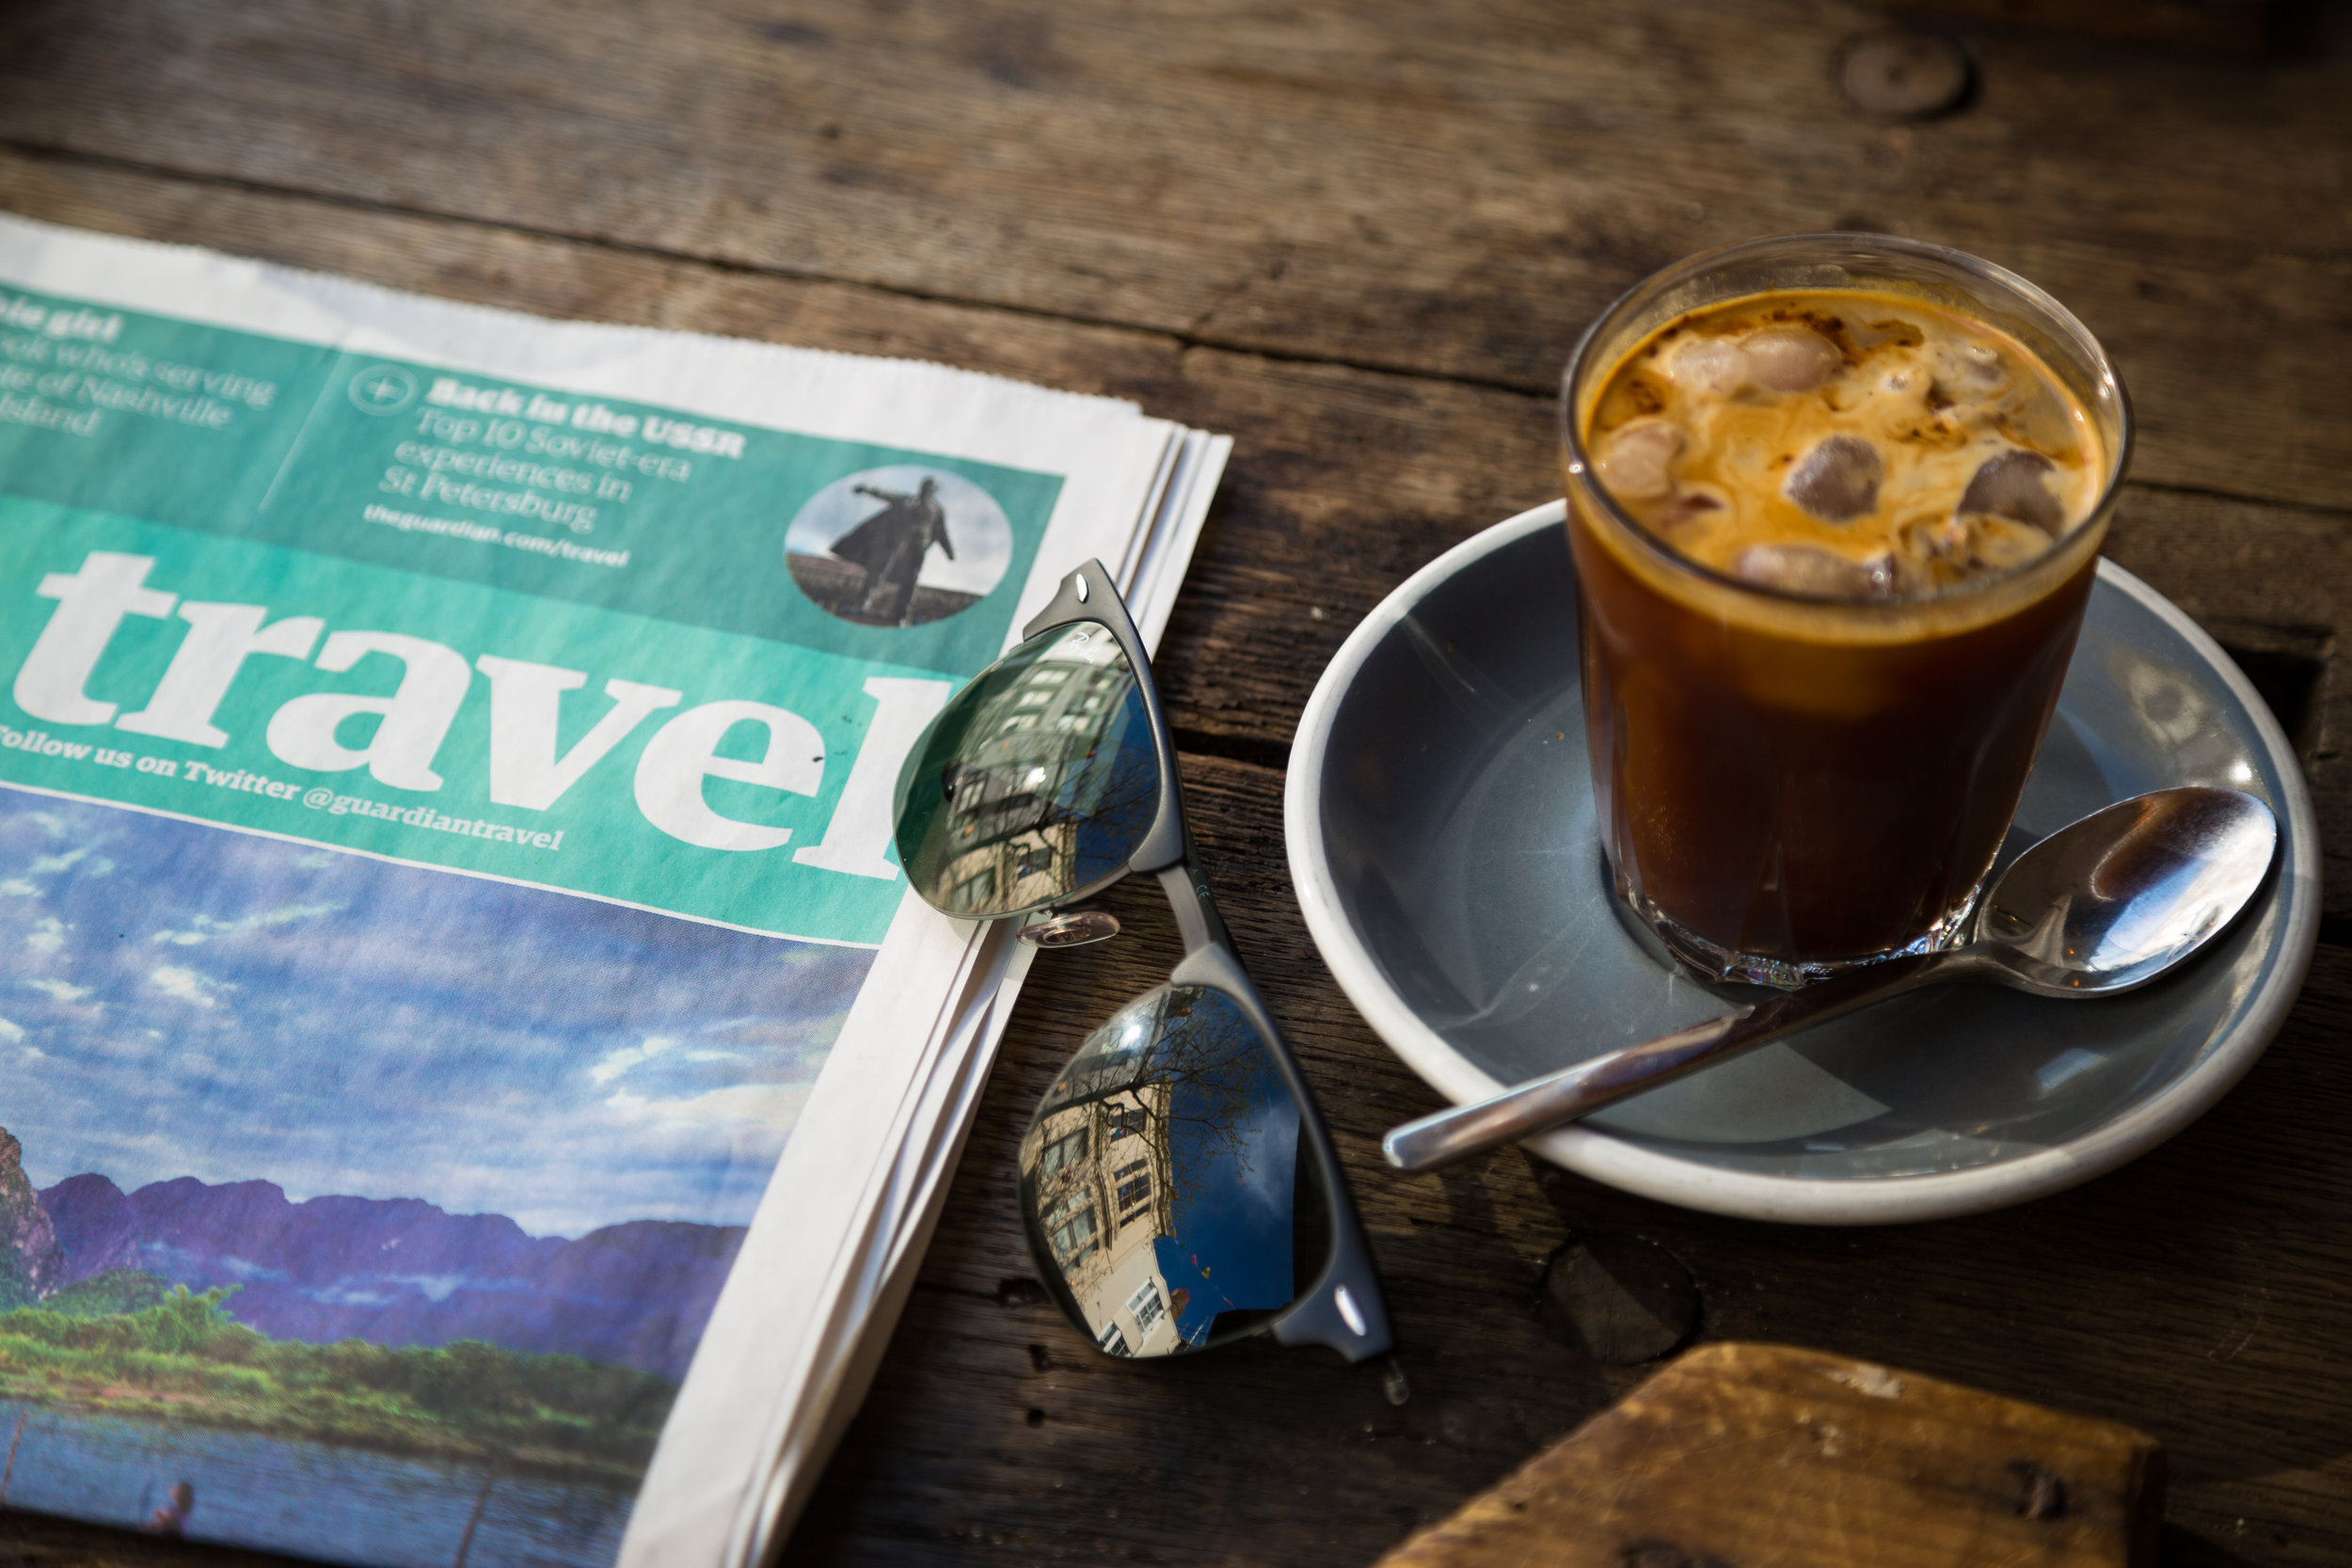 News paper and coffee